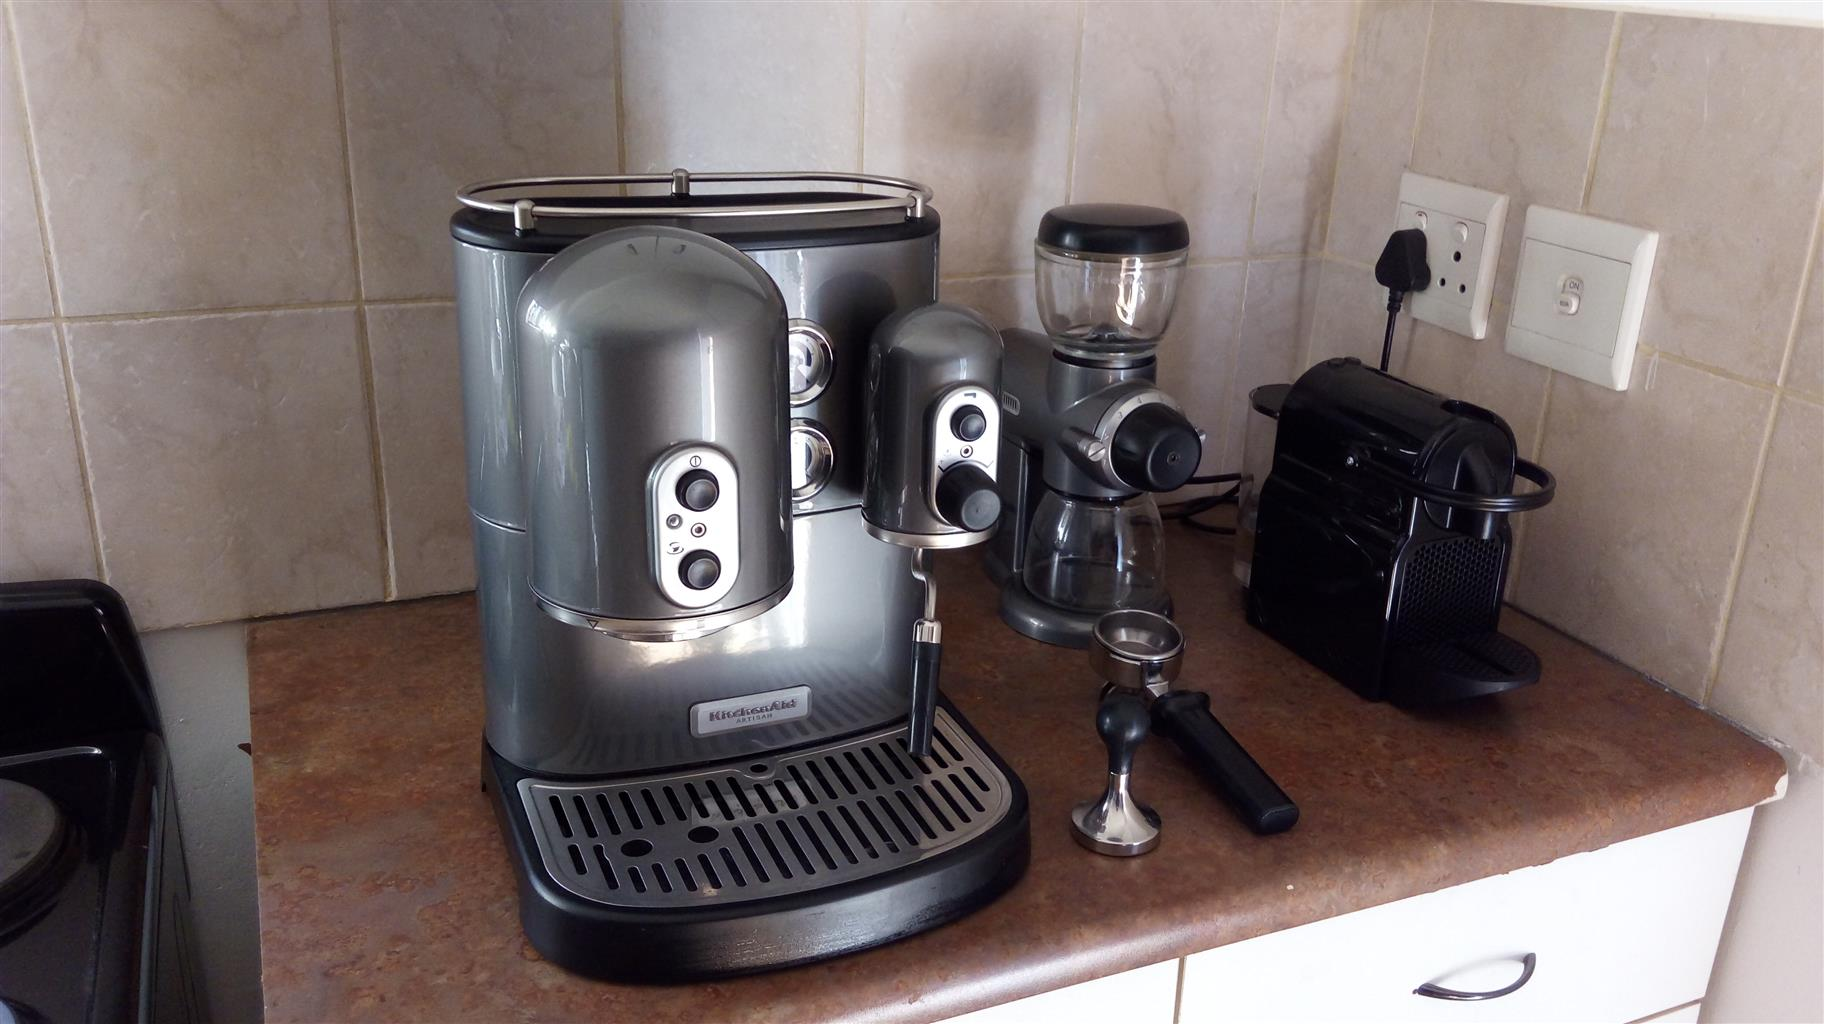 Kitchen Aid espresso maker and coffee grinder